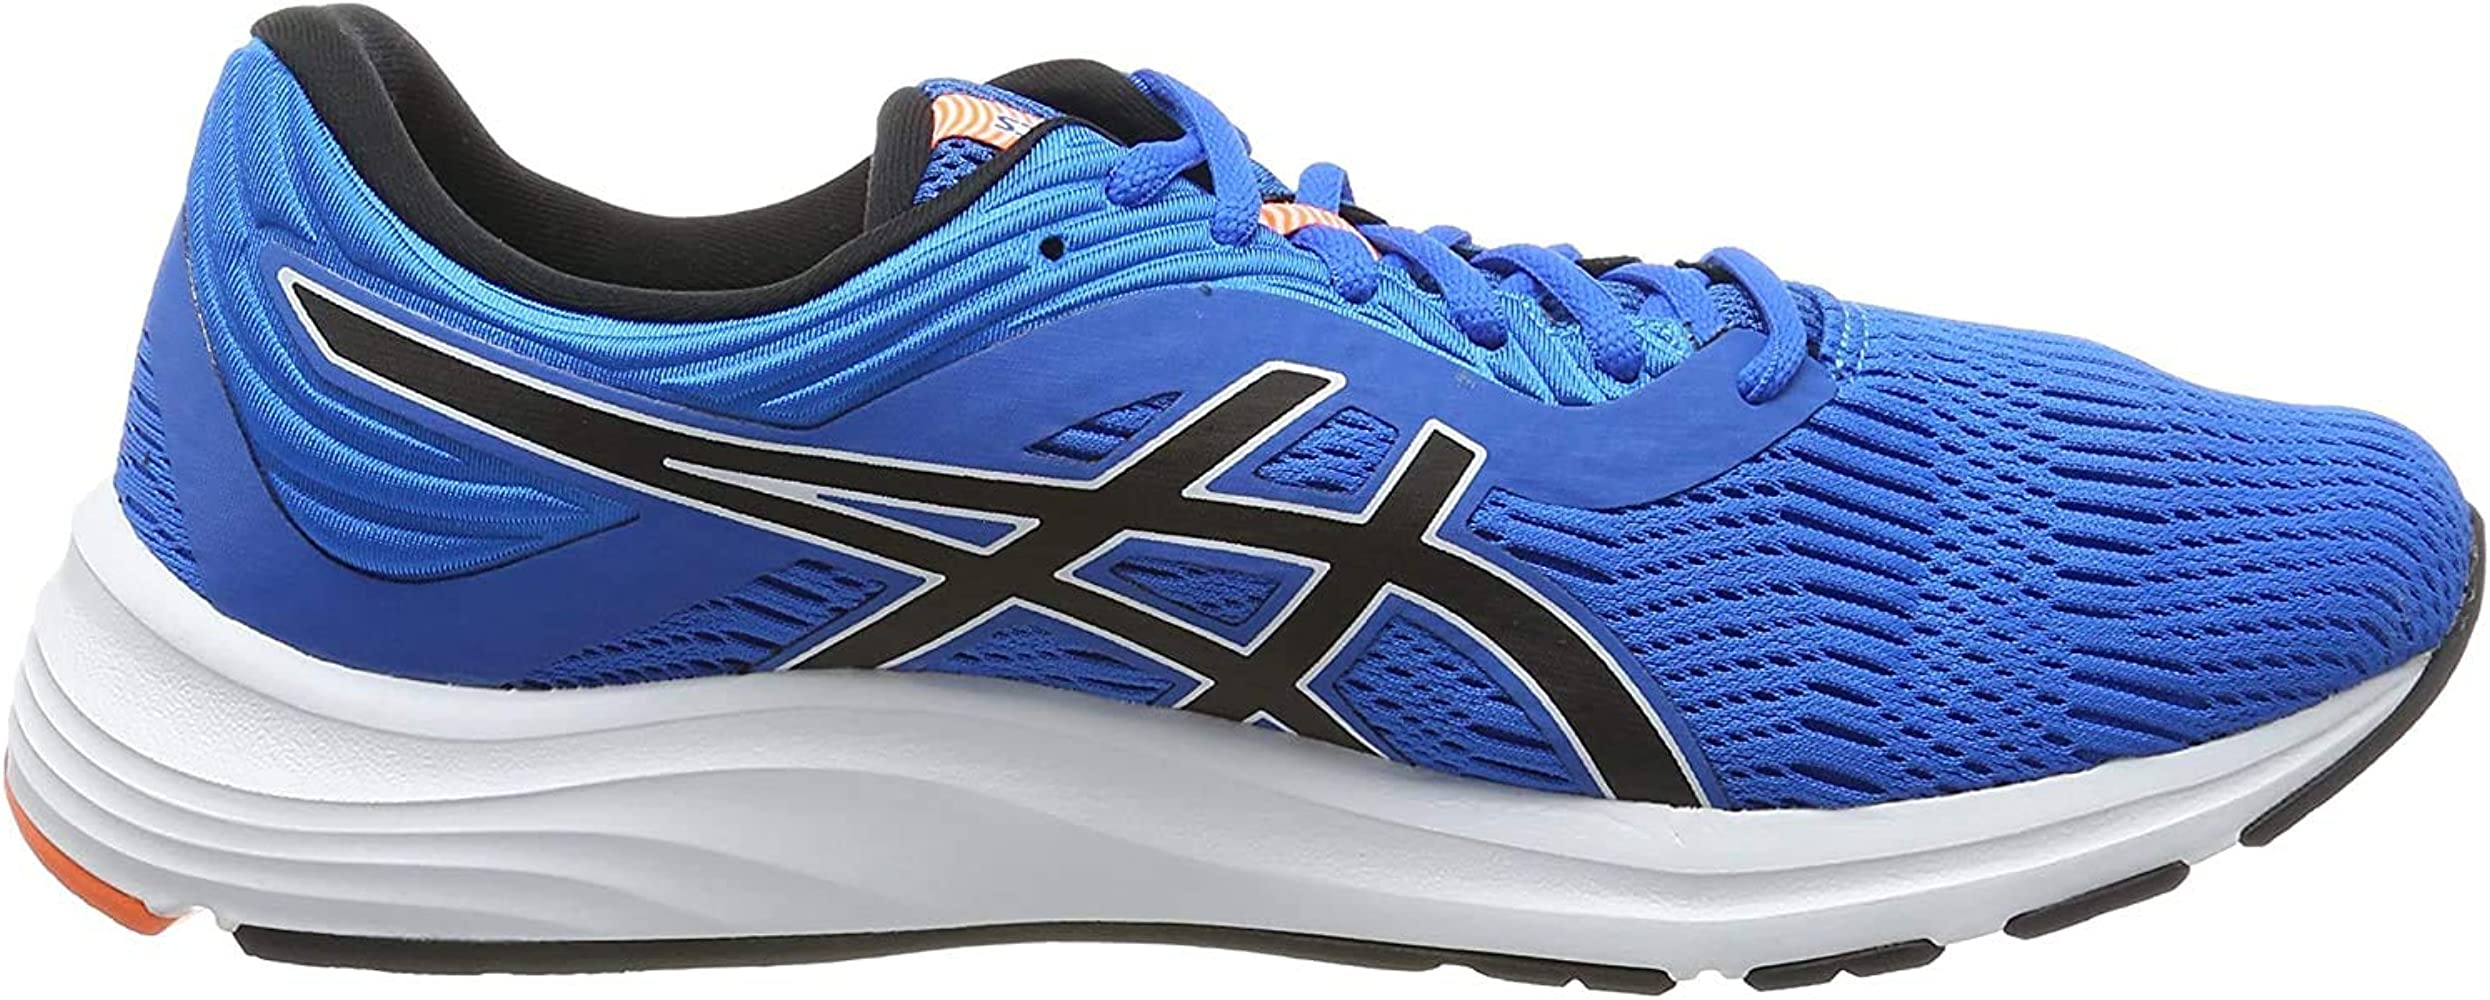 asics trail walking shoes quito